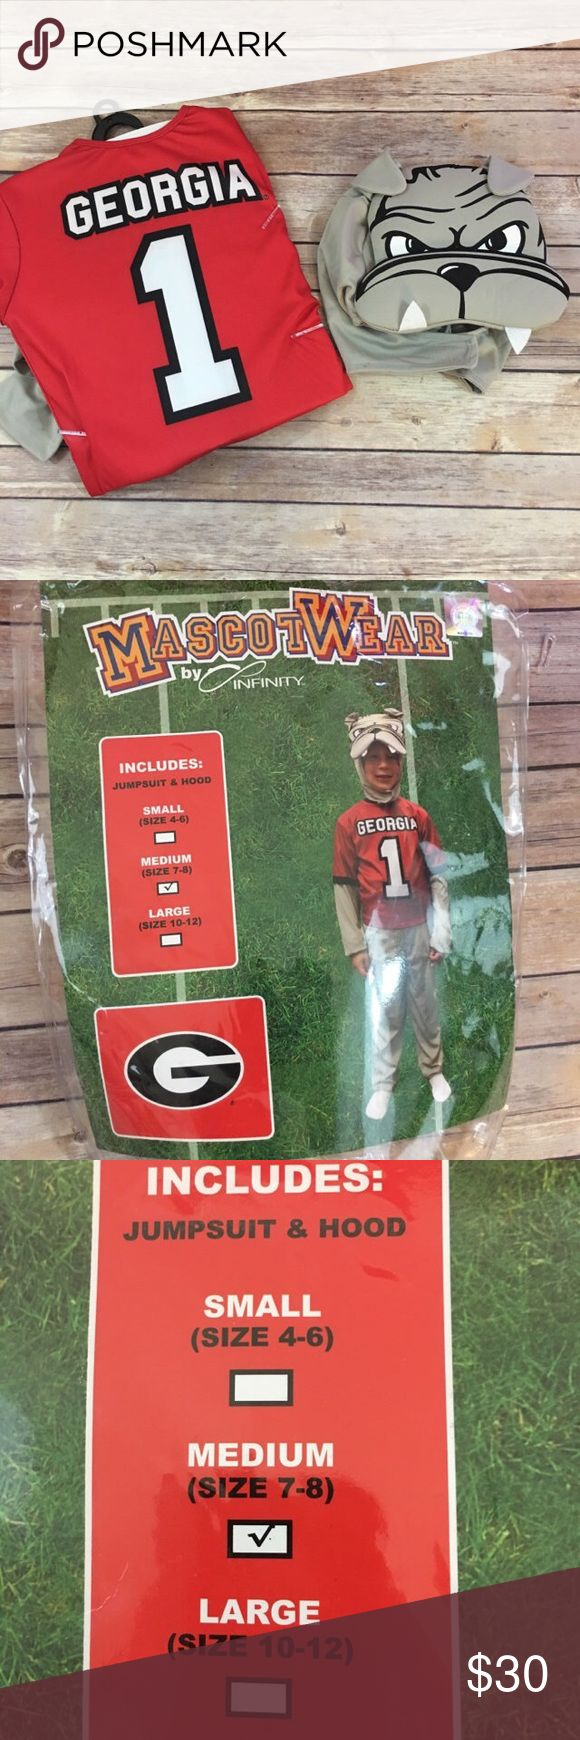 MascotWear Mascot Wear Georgia UGA Bulldog Costume MascotWear Mascot Wear Georgia UGA Bulldog Costume M 7/8  Super cute!  New without tag.  Has been removed from packaging for photos.  Includes head piece and bodysuit.  Size is medium or 7/8.  #mascotwear #costume #uga #bulldog #bulldogs #georgiaonmymind #costume #spiritweek #halloween #dressup #gameday #THEseason #football #mascot #dawgs #godawgs #new #nip #nwot MascotWear Costumes